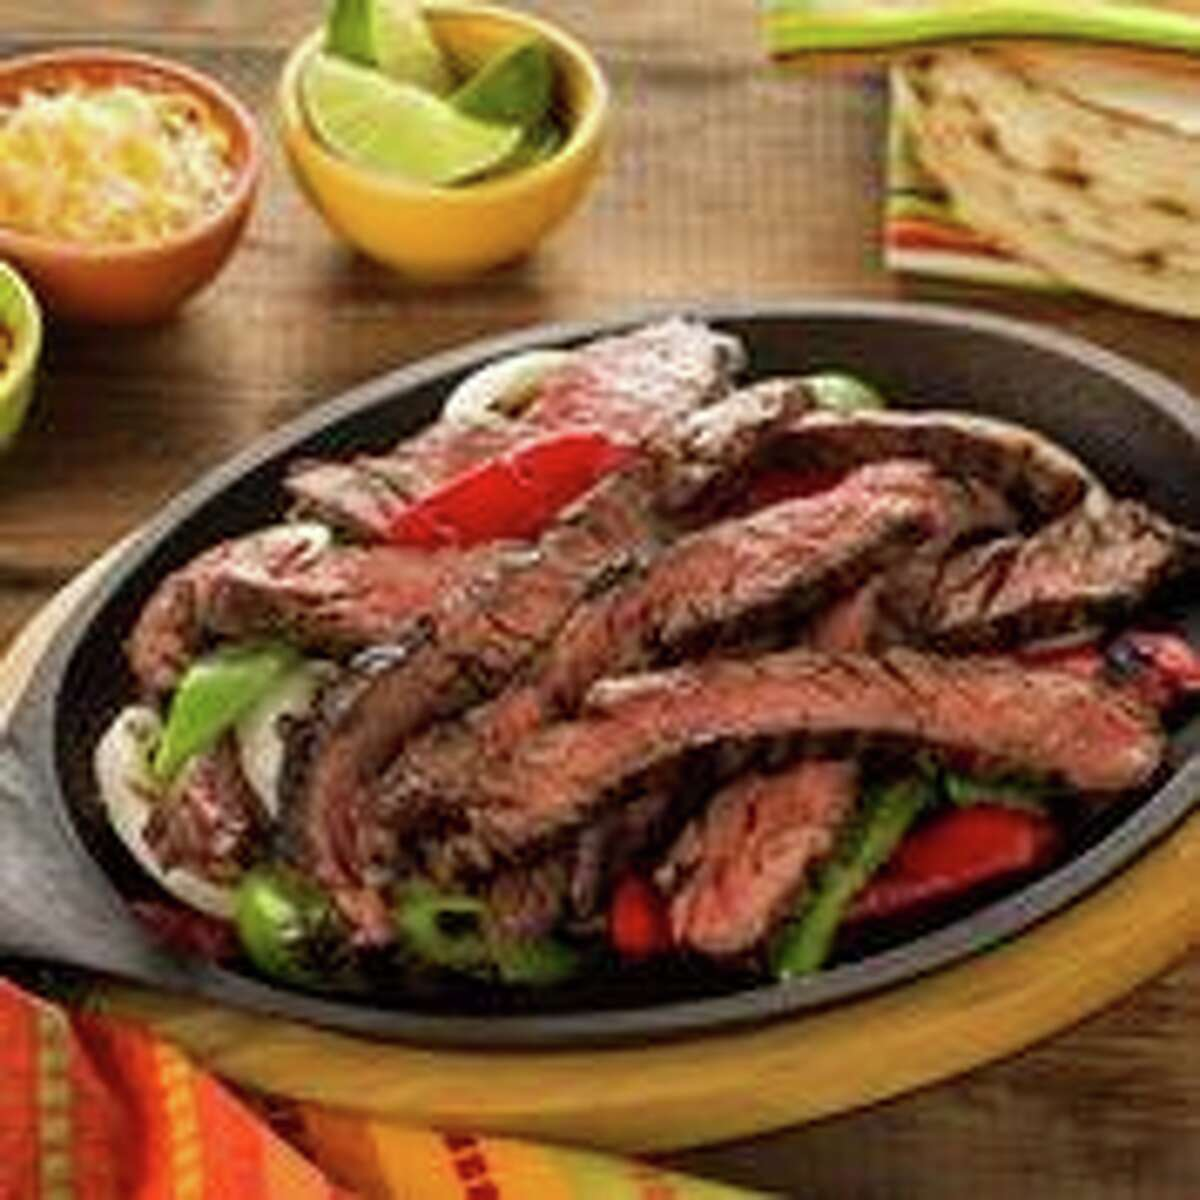 Tex-Mex Fajitas:Marinate your skirt steak at home and put it in your cooler for your weekend camping trip! Here's what you'll need 1. 2 lbs. Skirt Steak, trimmed 2. 1 sliced onion 3. 1 sliced bell pepper 4. flour tortillas 5. ½ cup Italian dressing 6. ½ cup apple cider vinegar 7. ½ cup soy sauce 8. 1/3 cup Worcestershire sauce 9. 1/3 cup brown sugar 10. 2 Tbsp. lime juice 11. Dash of garlic powder or crushed fresh garlic.